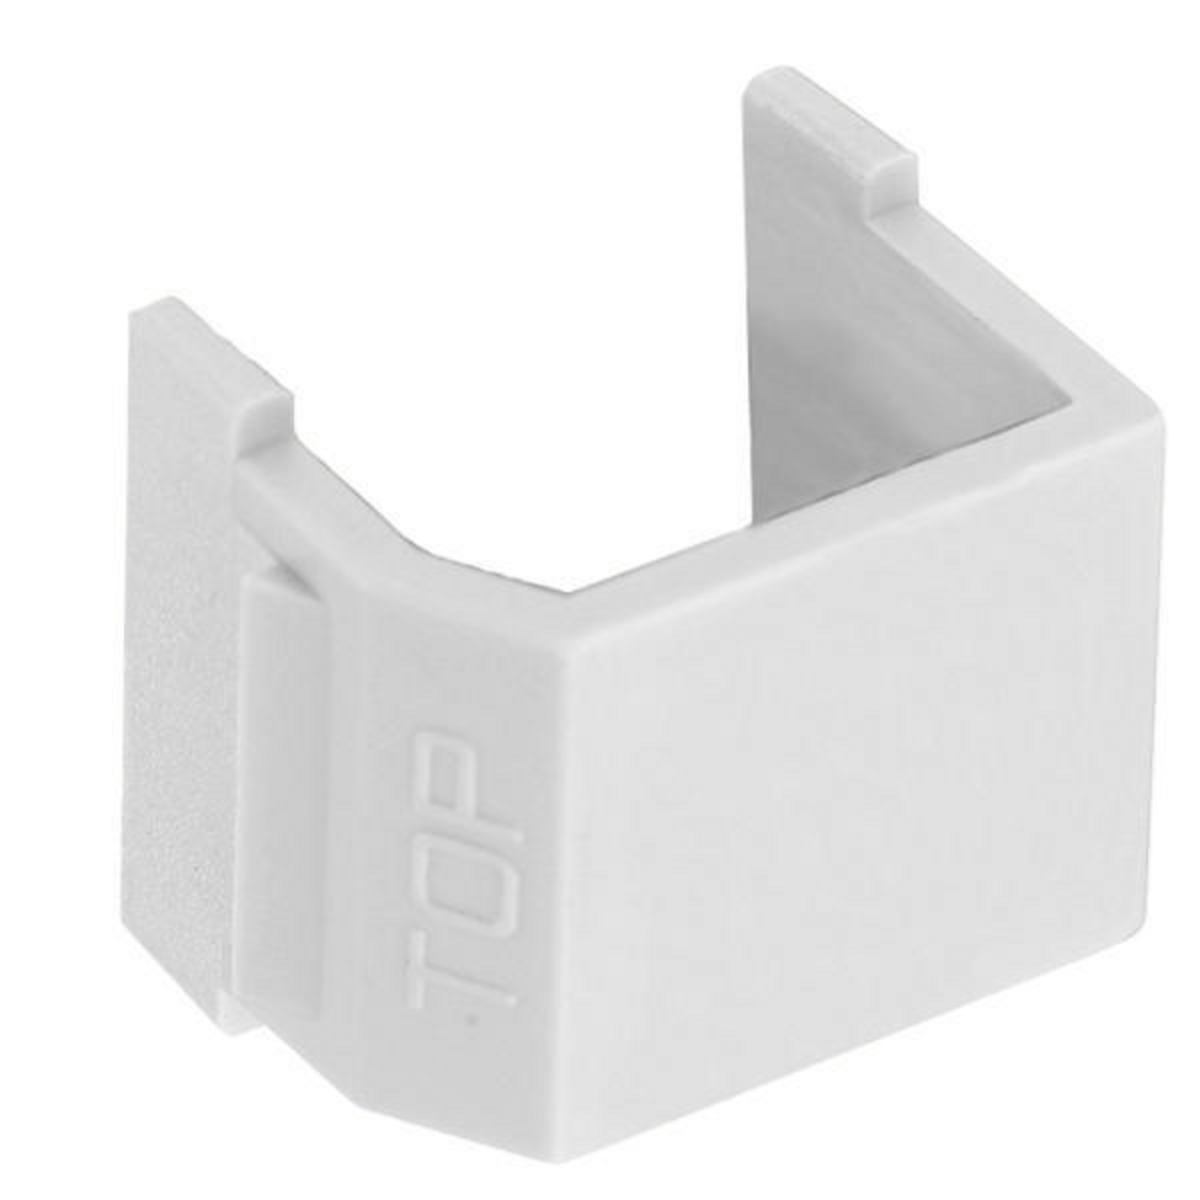 Hubbell SFSBW10 Blank White Snap-Fit Modular Connector